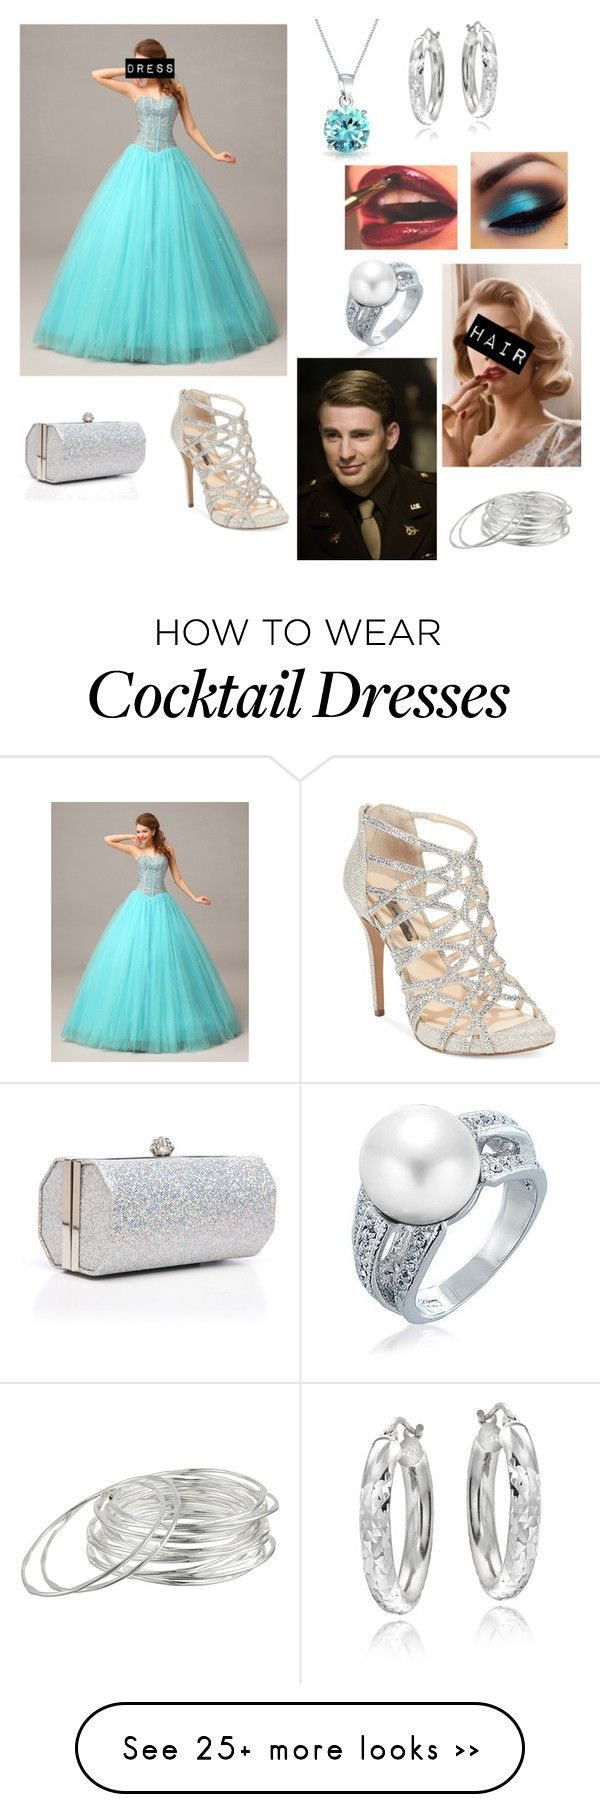 """Prom with Captain America"" by potterhead212 on Polyvore featuring мода, Bling Jewelry, INC International Concepts, Mondevio, Lauren Ralph Lauren, J. Furmani и avengerprom"